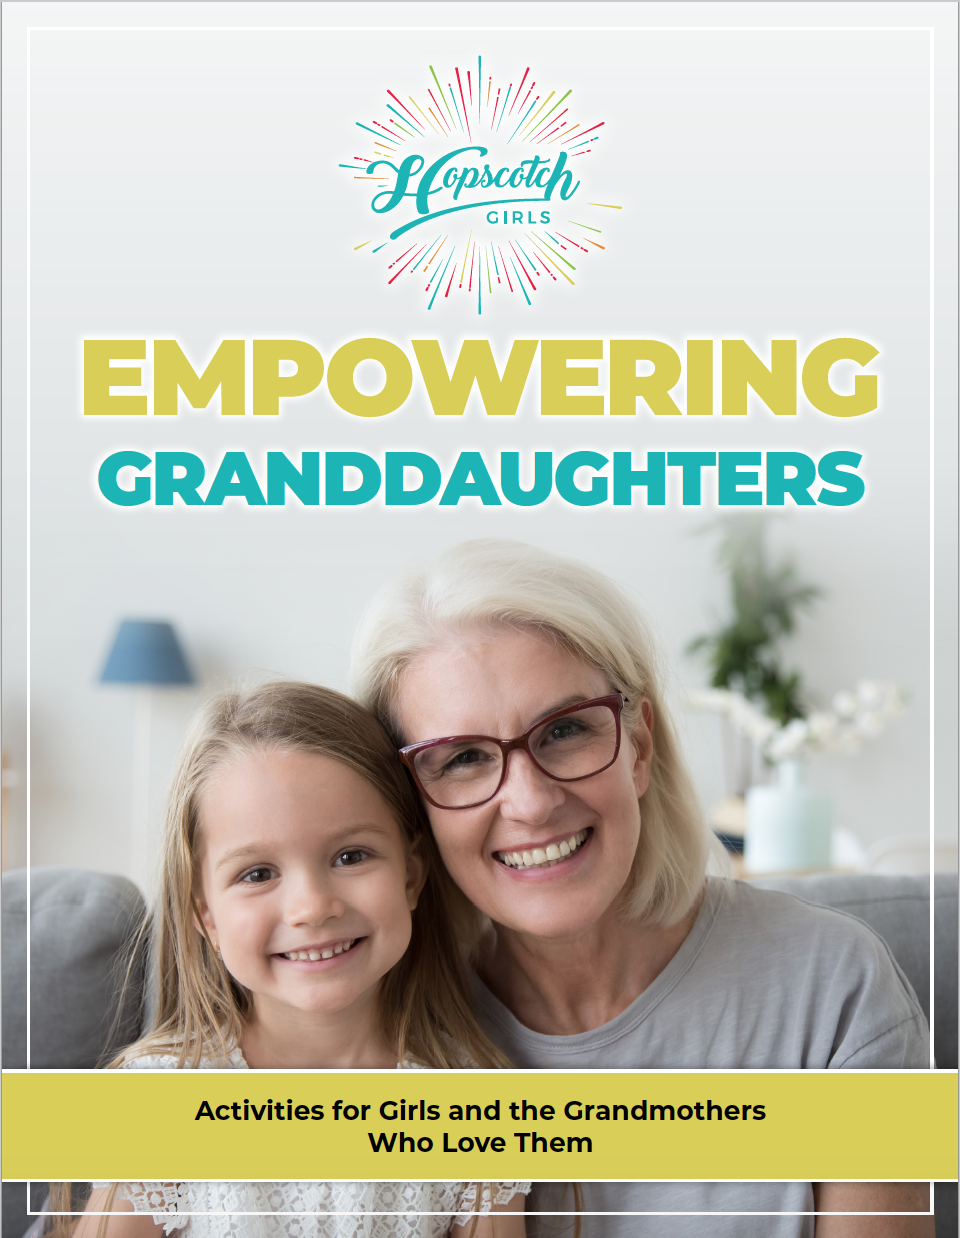 Empowering Granddaughters Activities for Girls from Hopscotch Girls